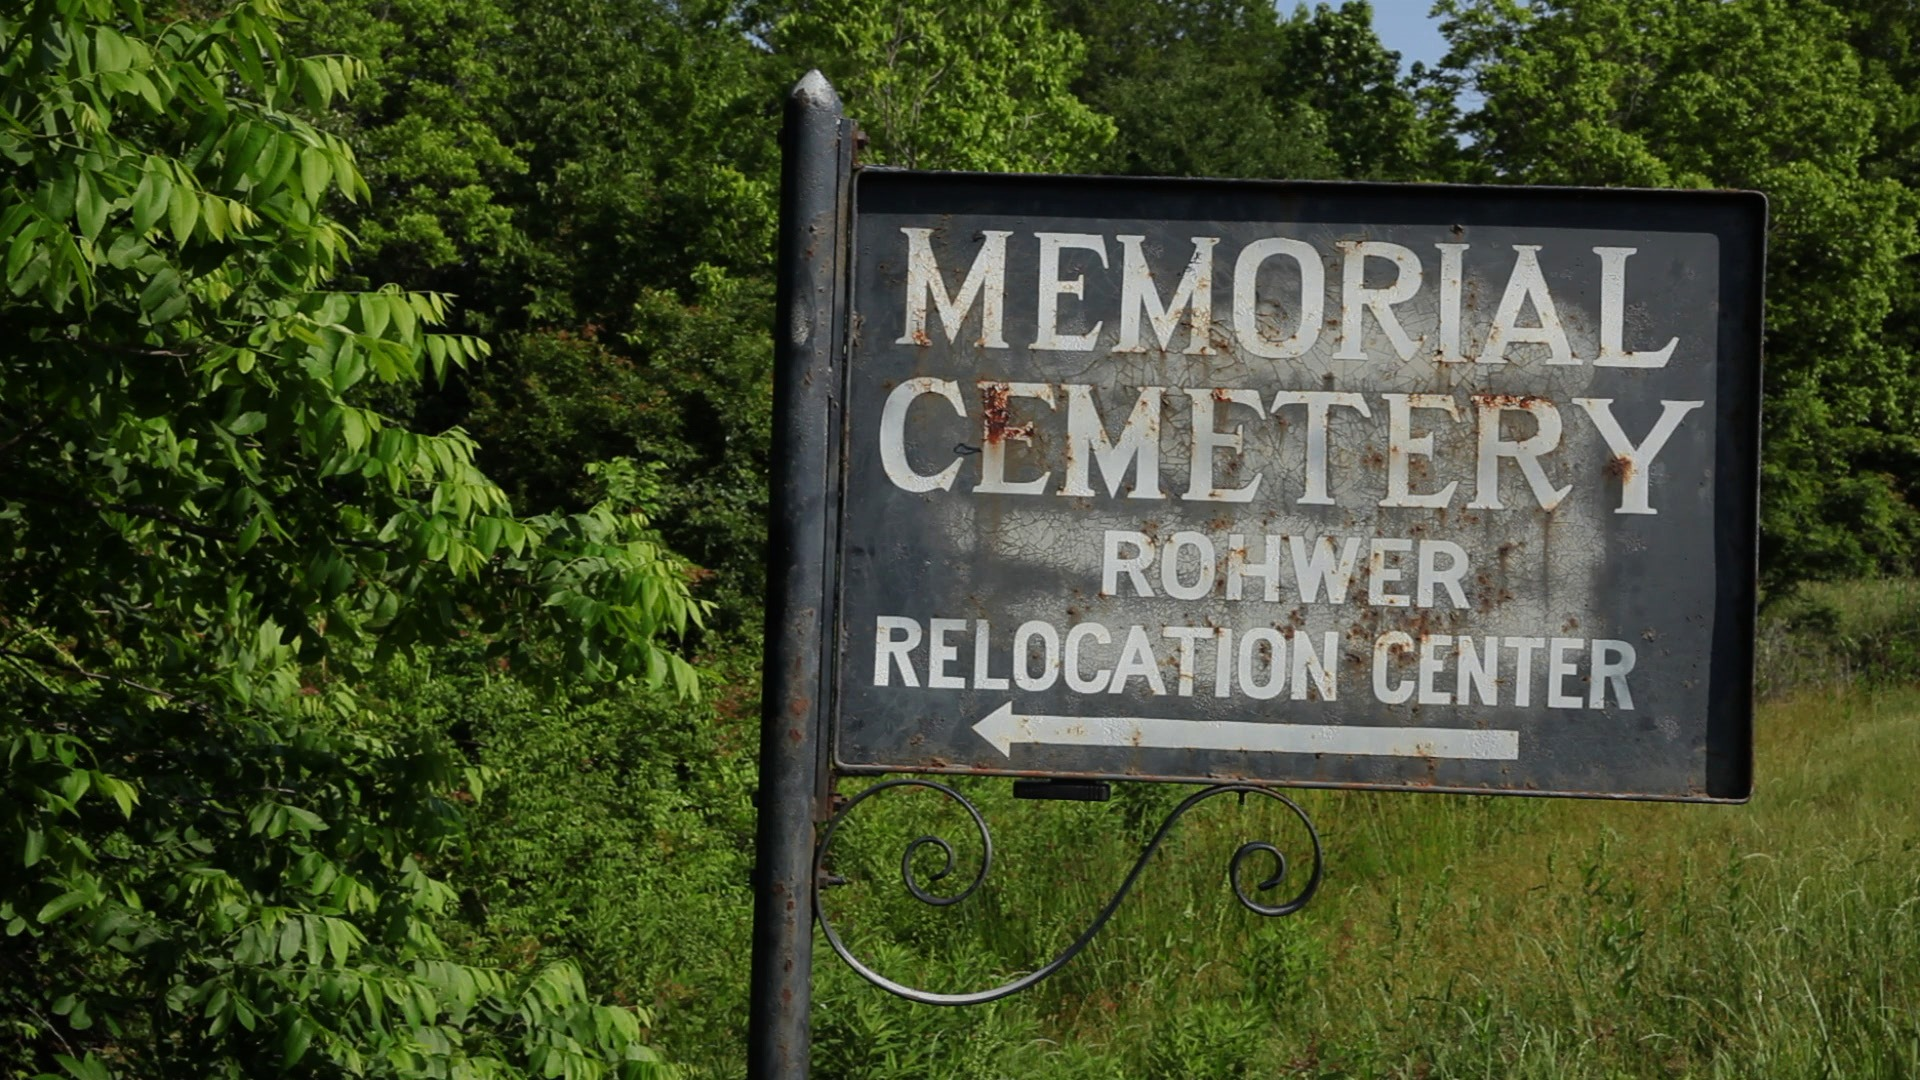 Cemetery sign, Rohwer Camp